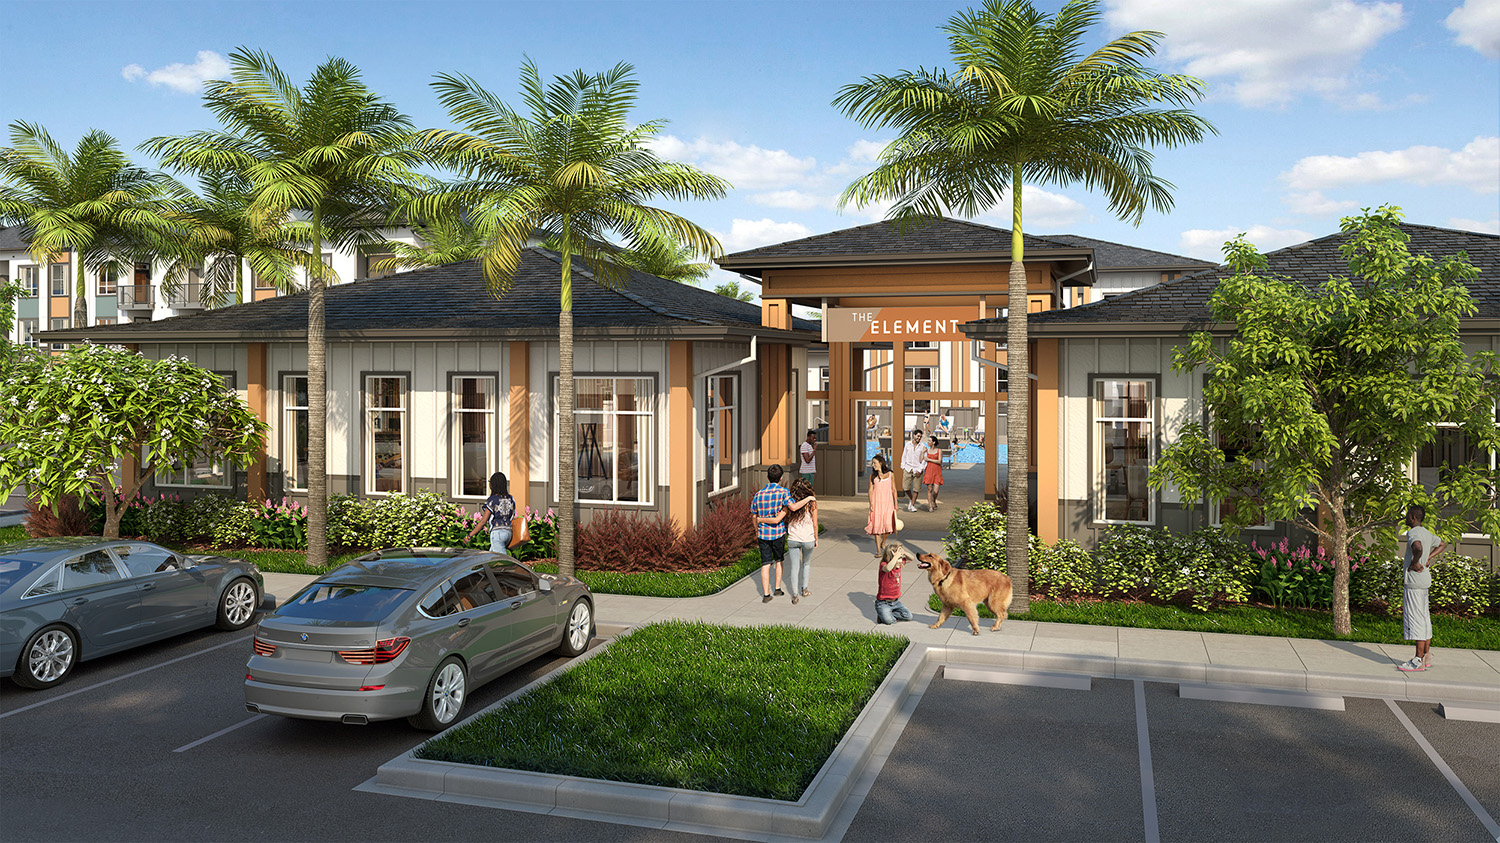 KTGY-Designed Sustainable TOD 318-Unit Apartment Community Breaks Ground in West Oahu Near Transit